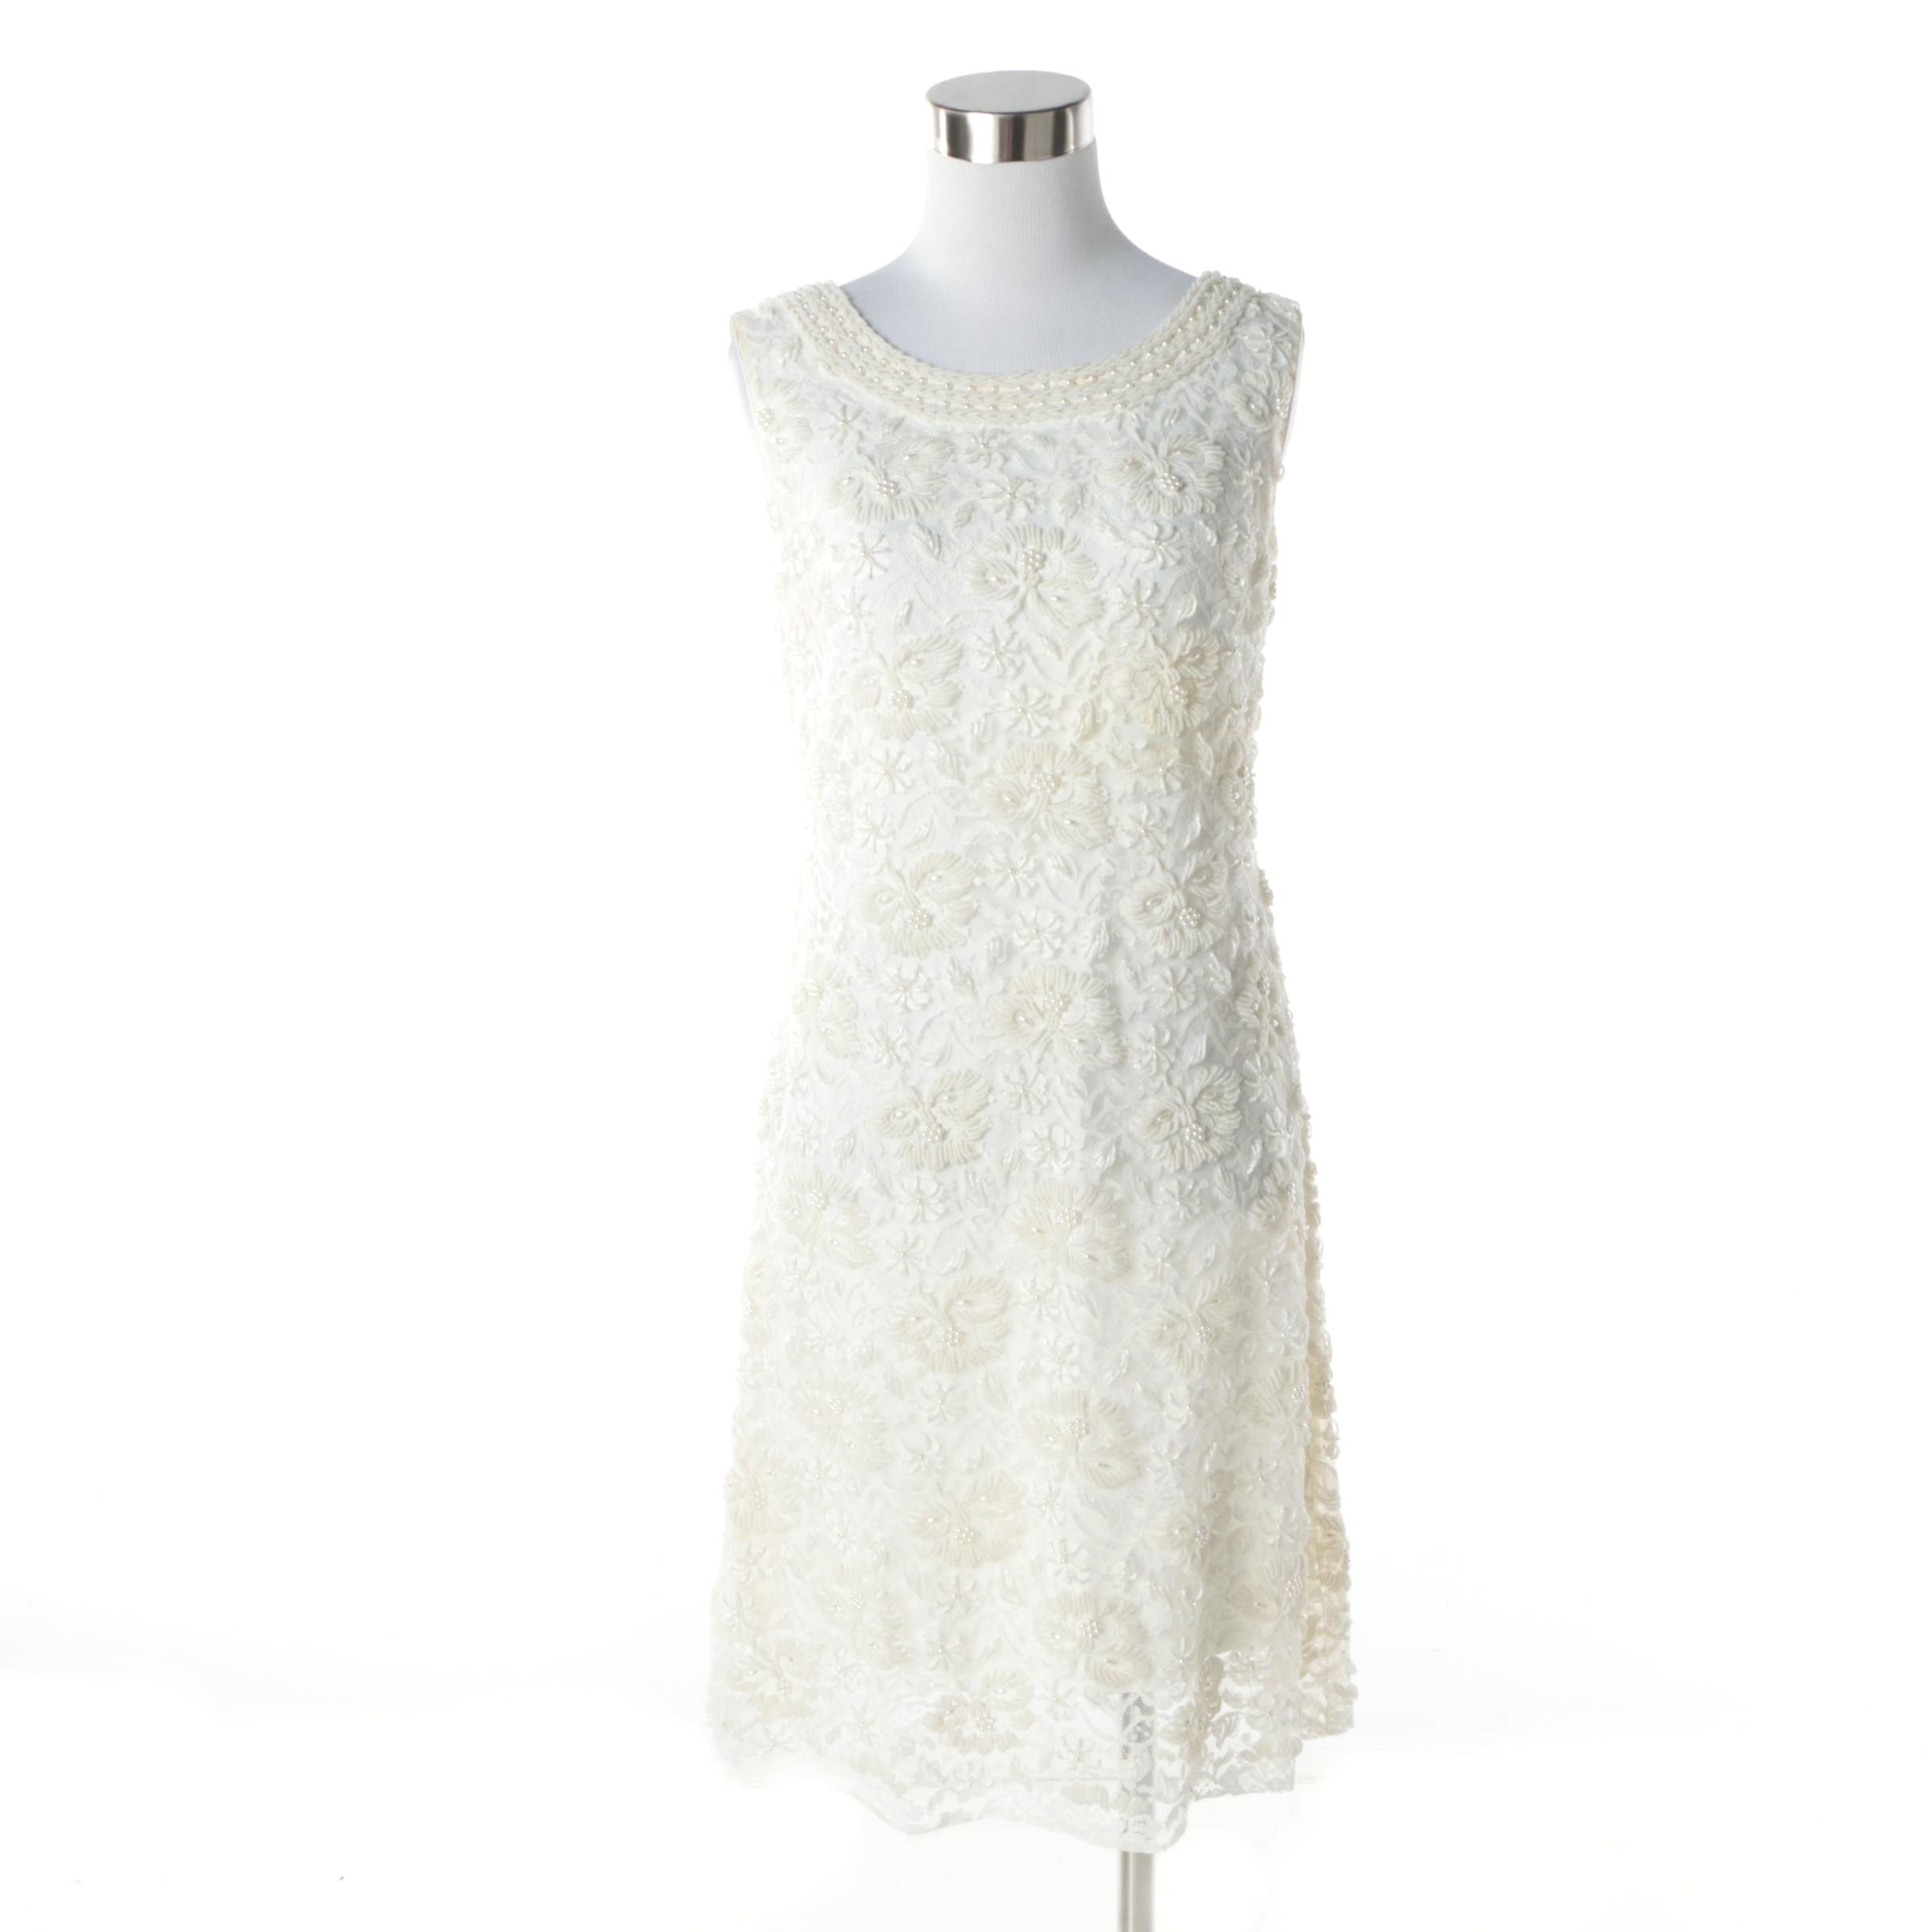 1960s Vintage Ricky Bo Hand Embroidered and Hand Beaded White Lace Shift Dress